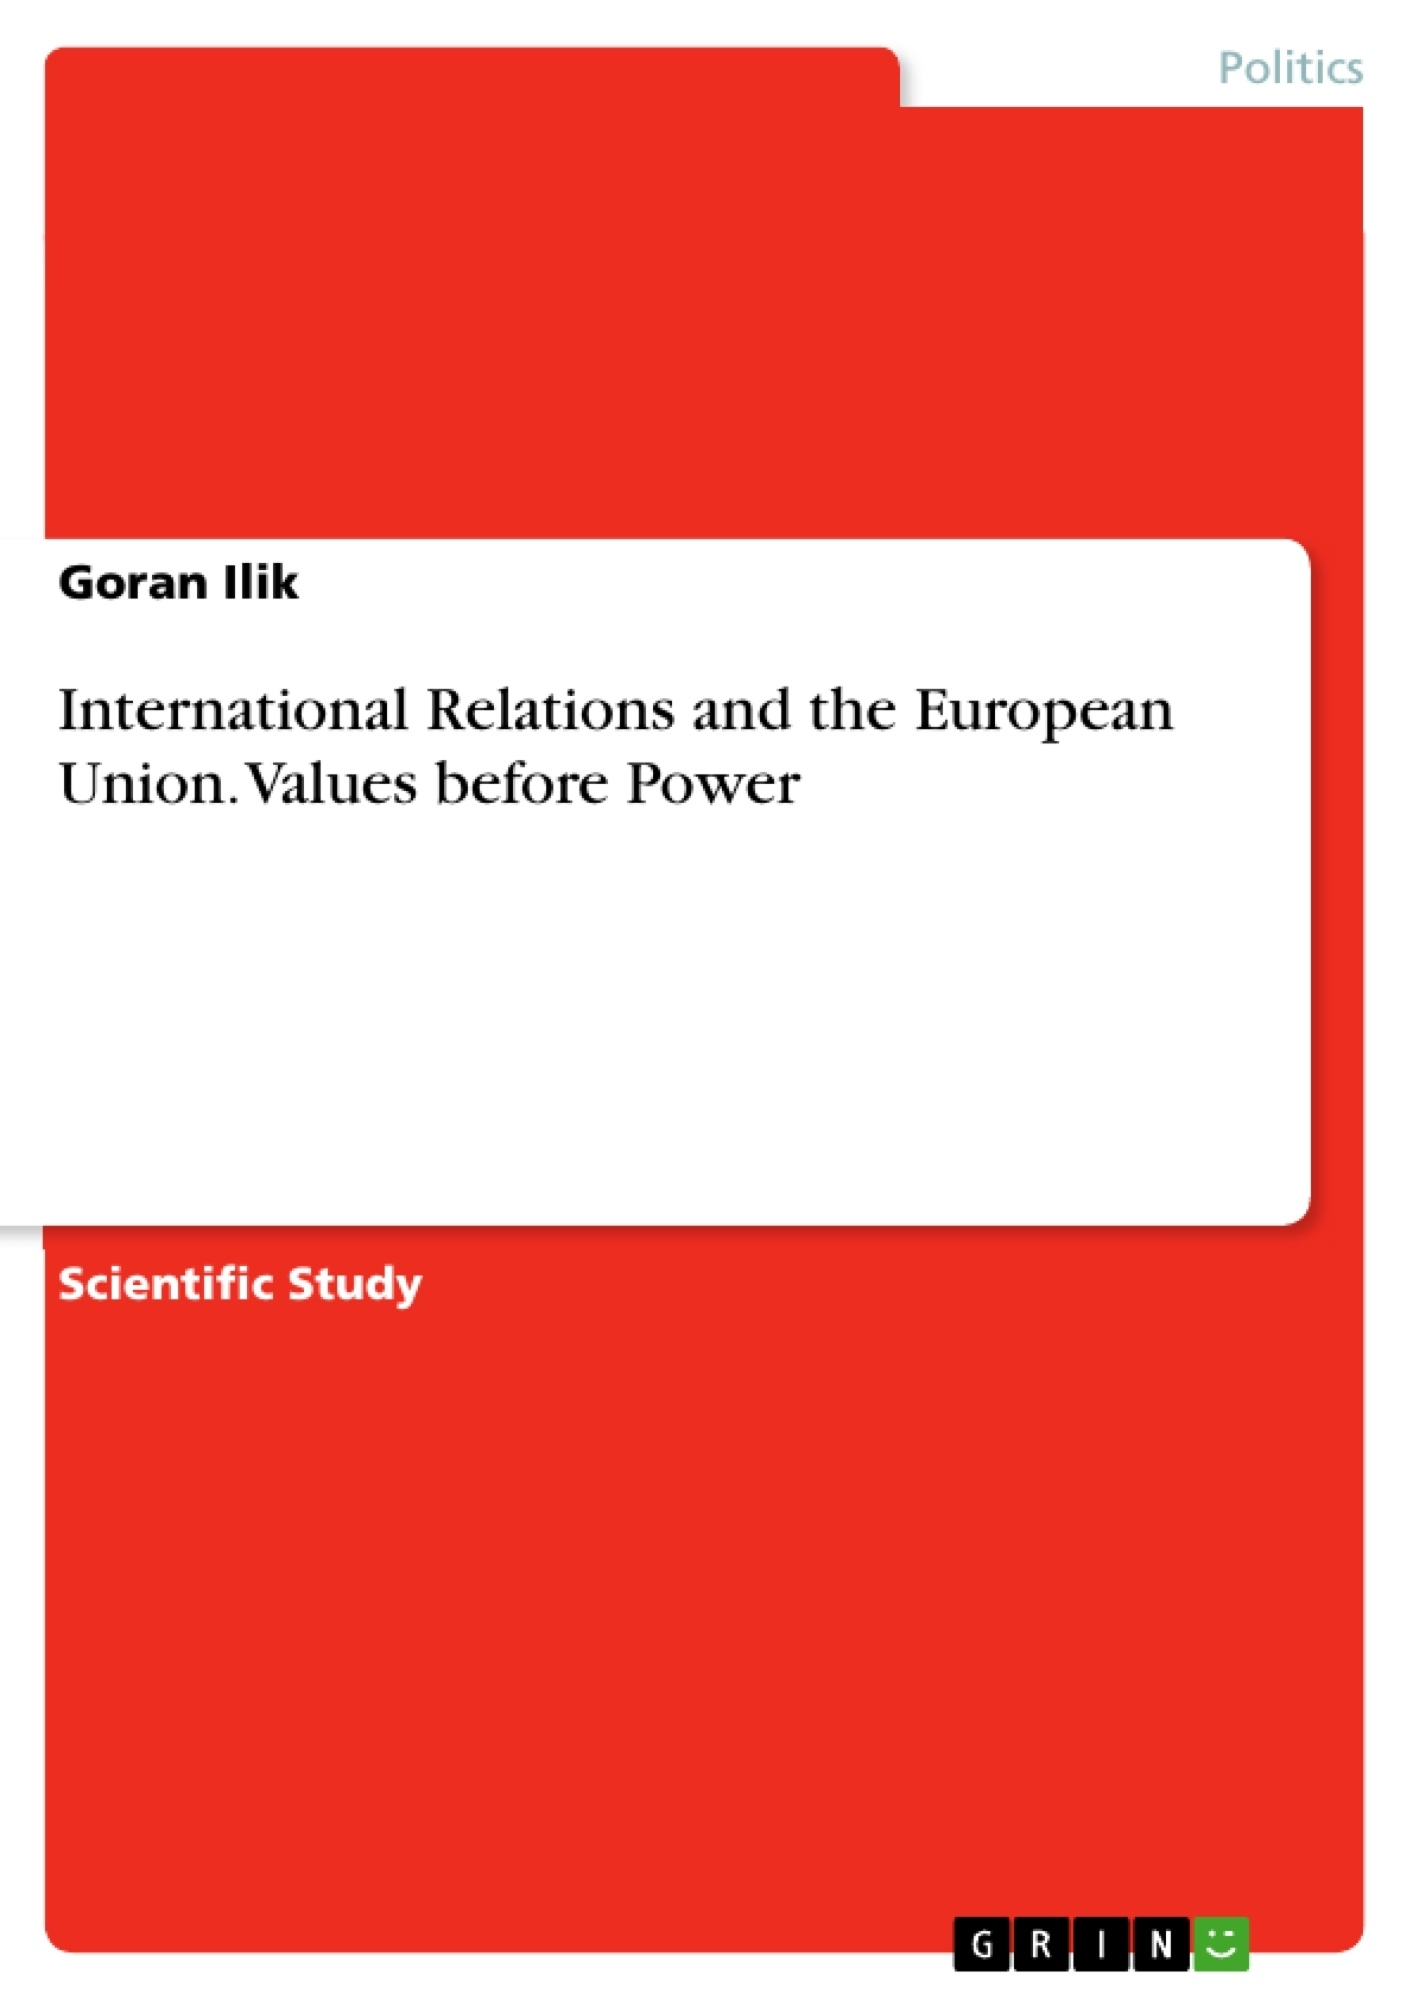 Title: International Relations and the European Union. Values before Power